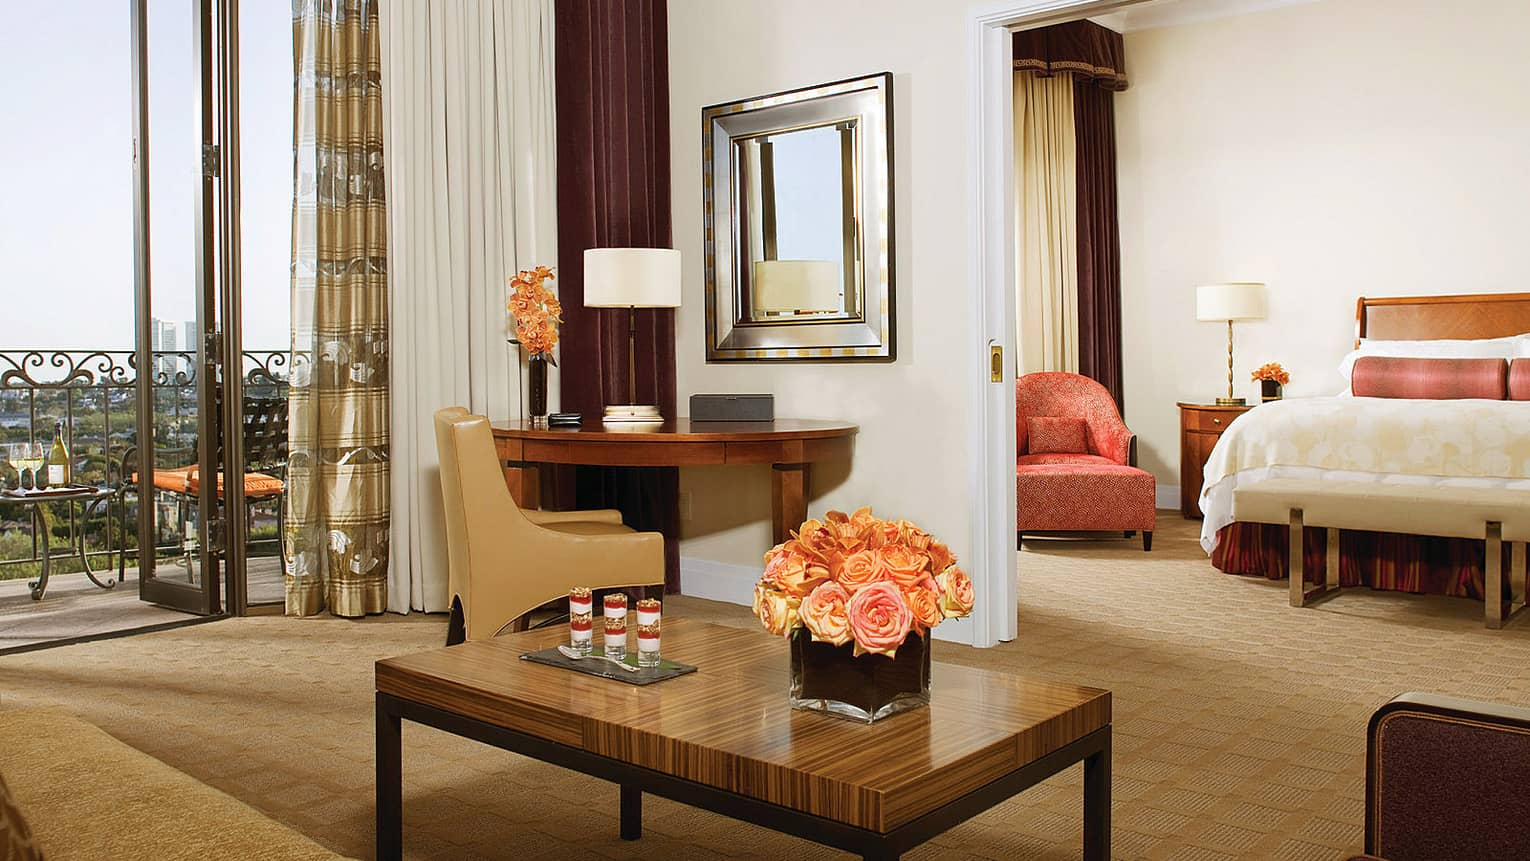 Deluxe Beverly Suite seating area, desk by large bay windows, balcony, bedroom door